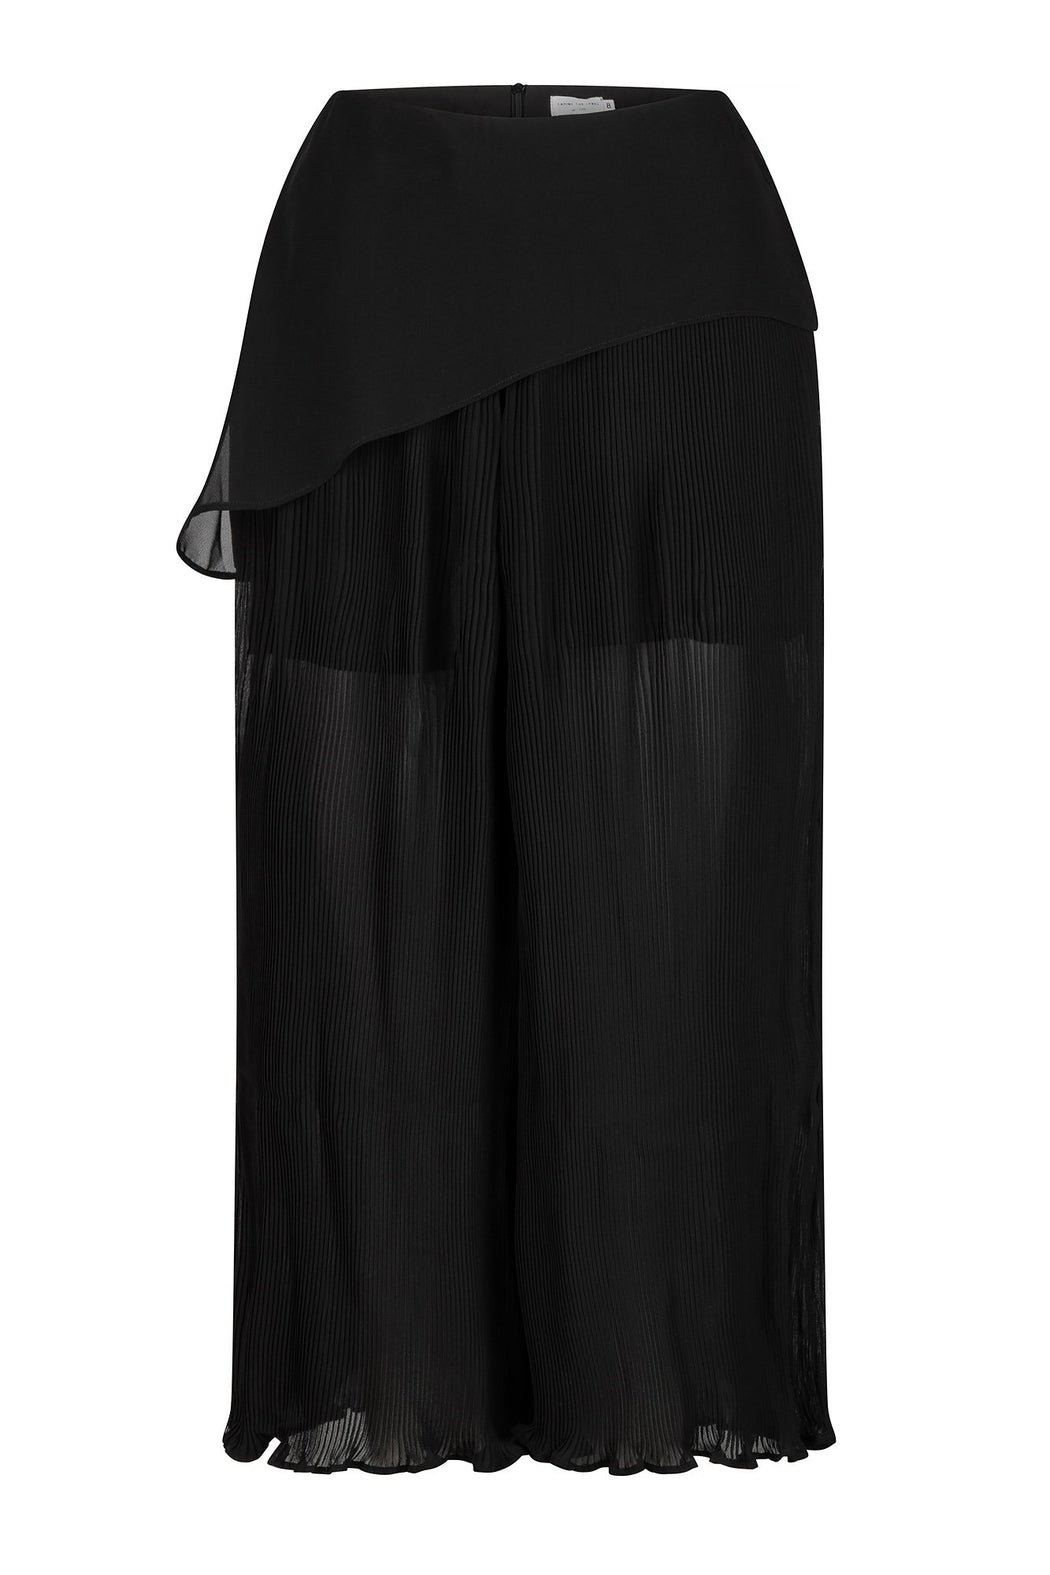 Taylah Pants - Black